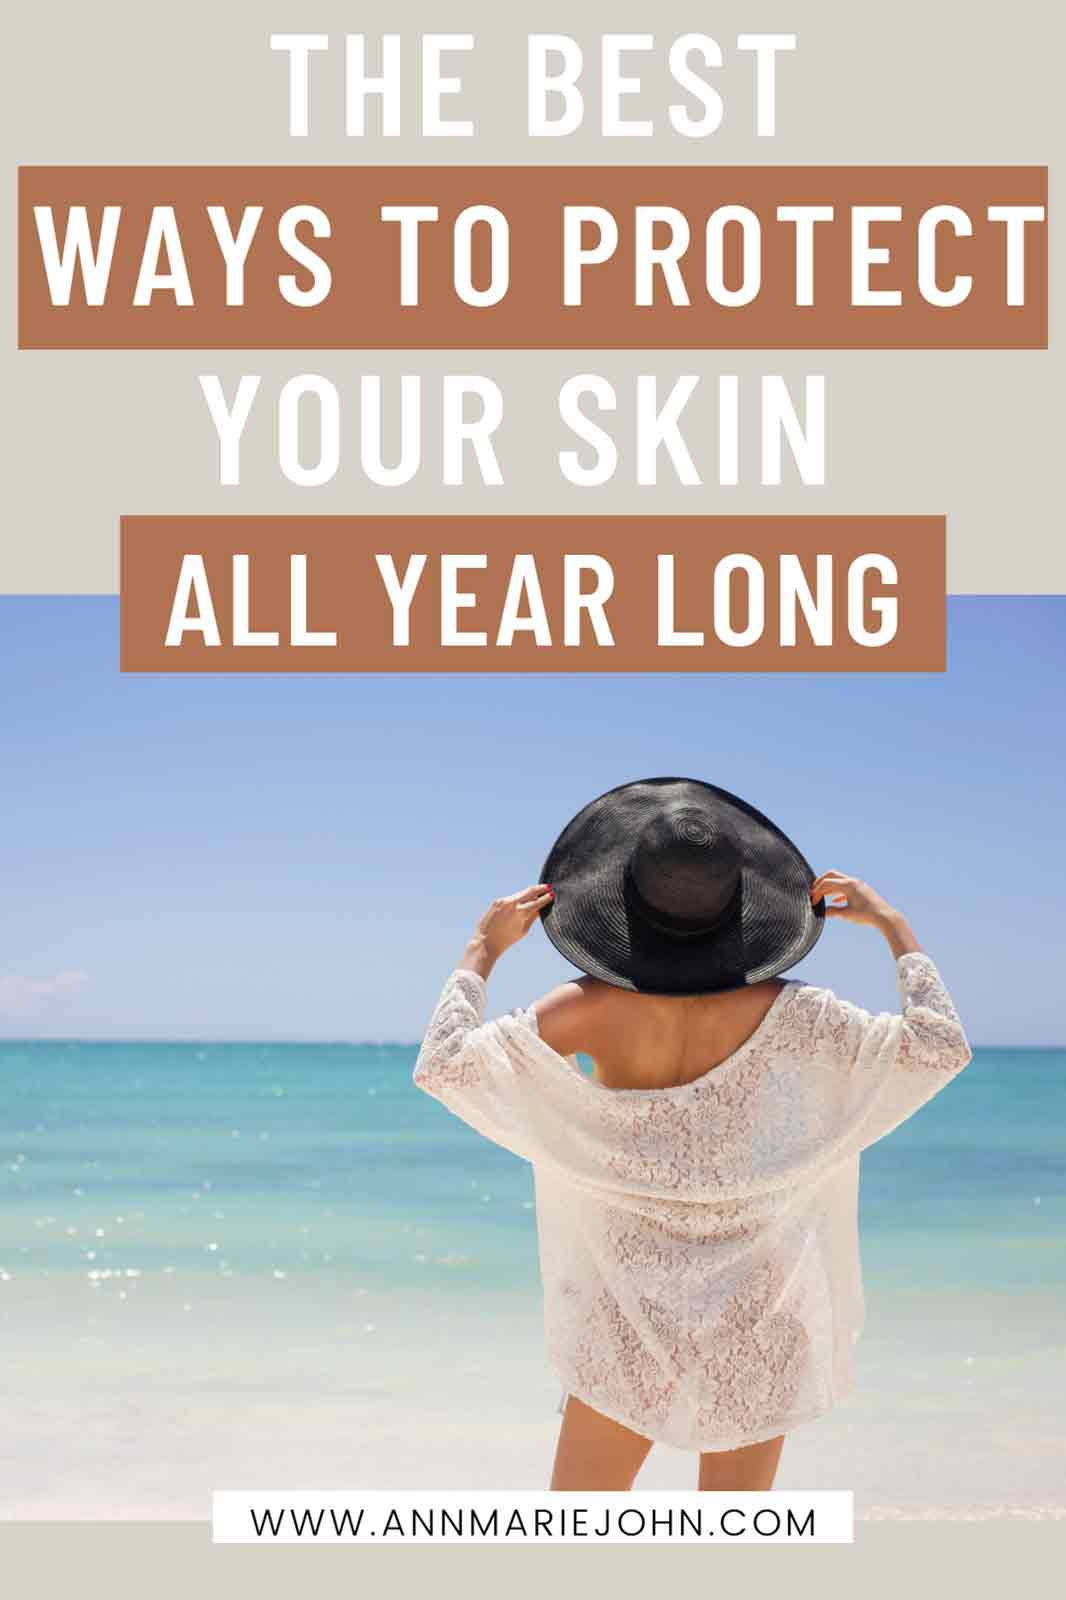 The Best Ways To Protect Your Skin All Year Long